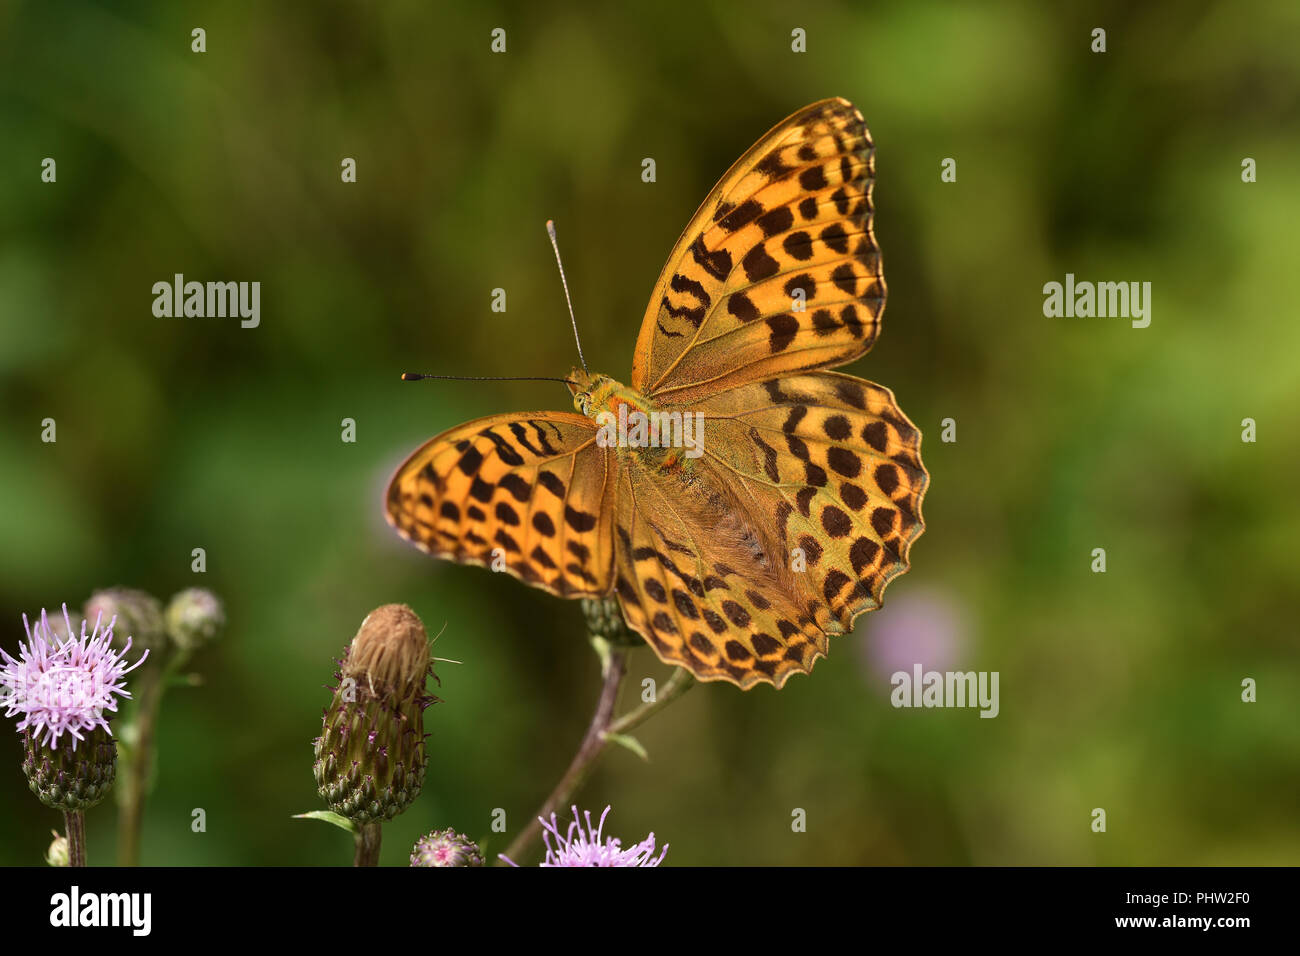 silver-washed fritillary, butterfly, Argynnis paphia, - Stock Image